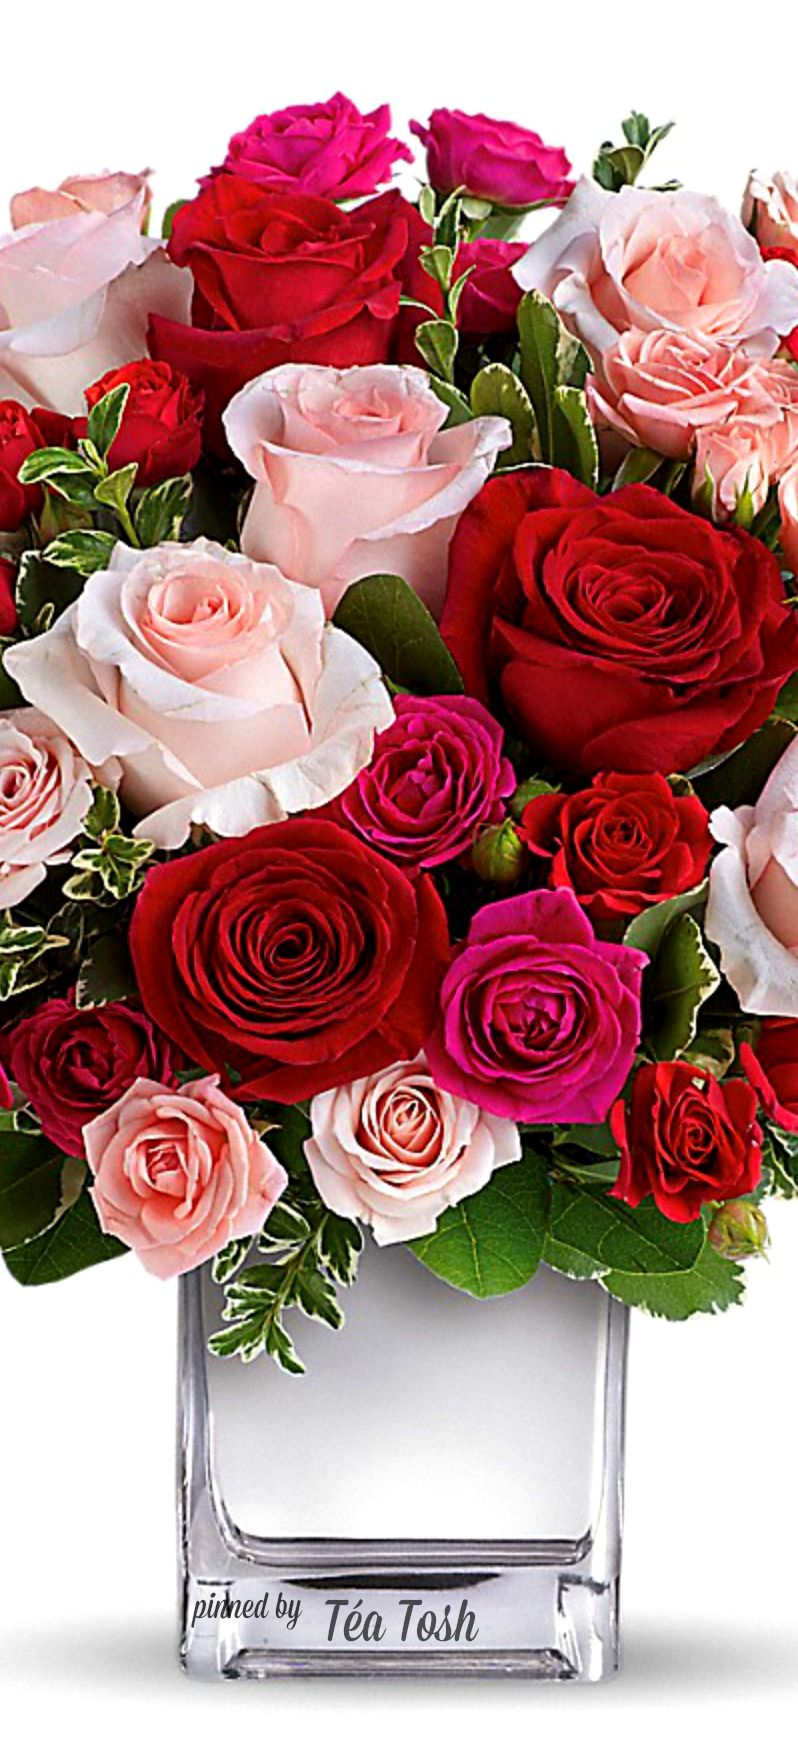 Ta toshlove medley bouquet w red roses beauty is everywhere ta toshlove medley bouquet w red roses izmirmasajfo